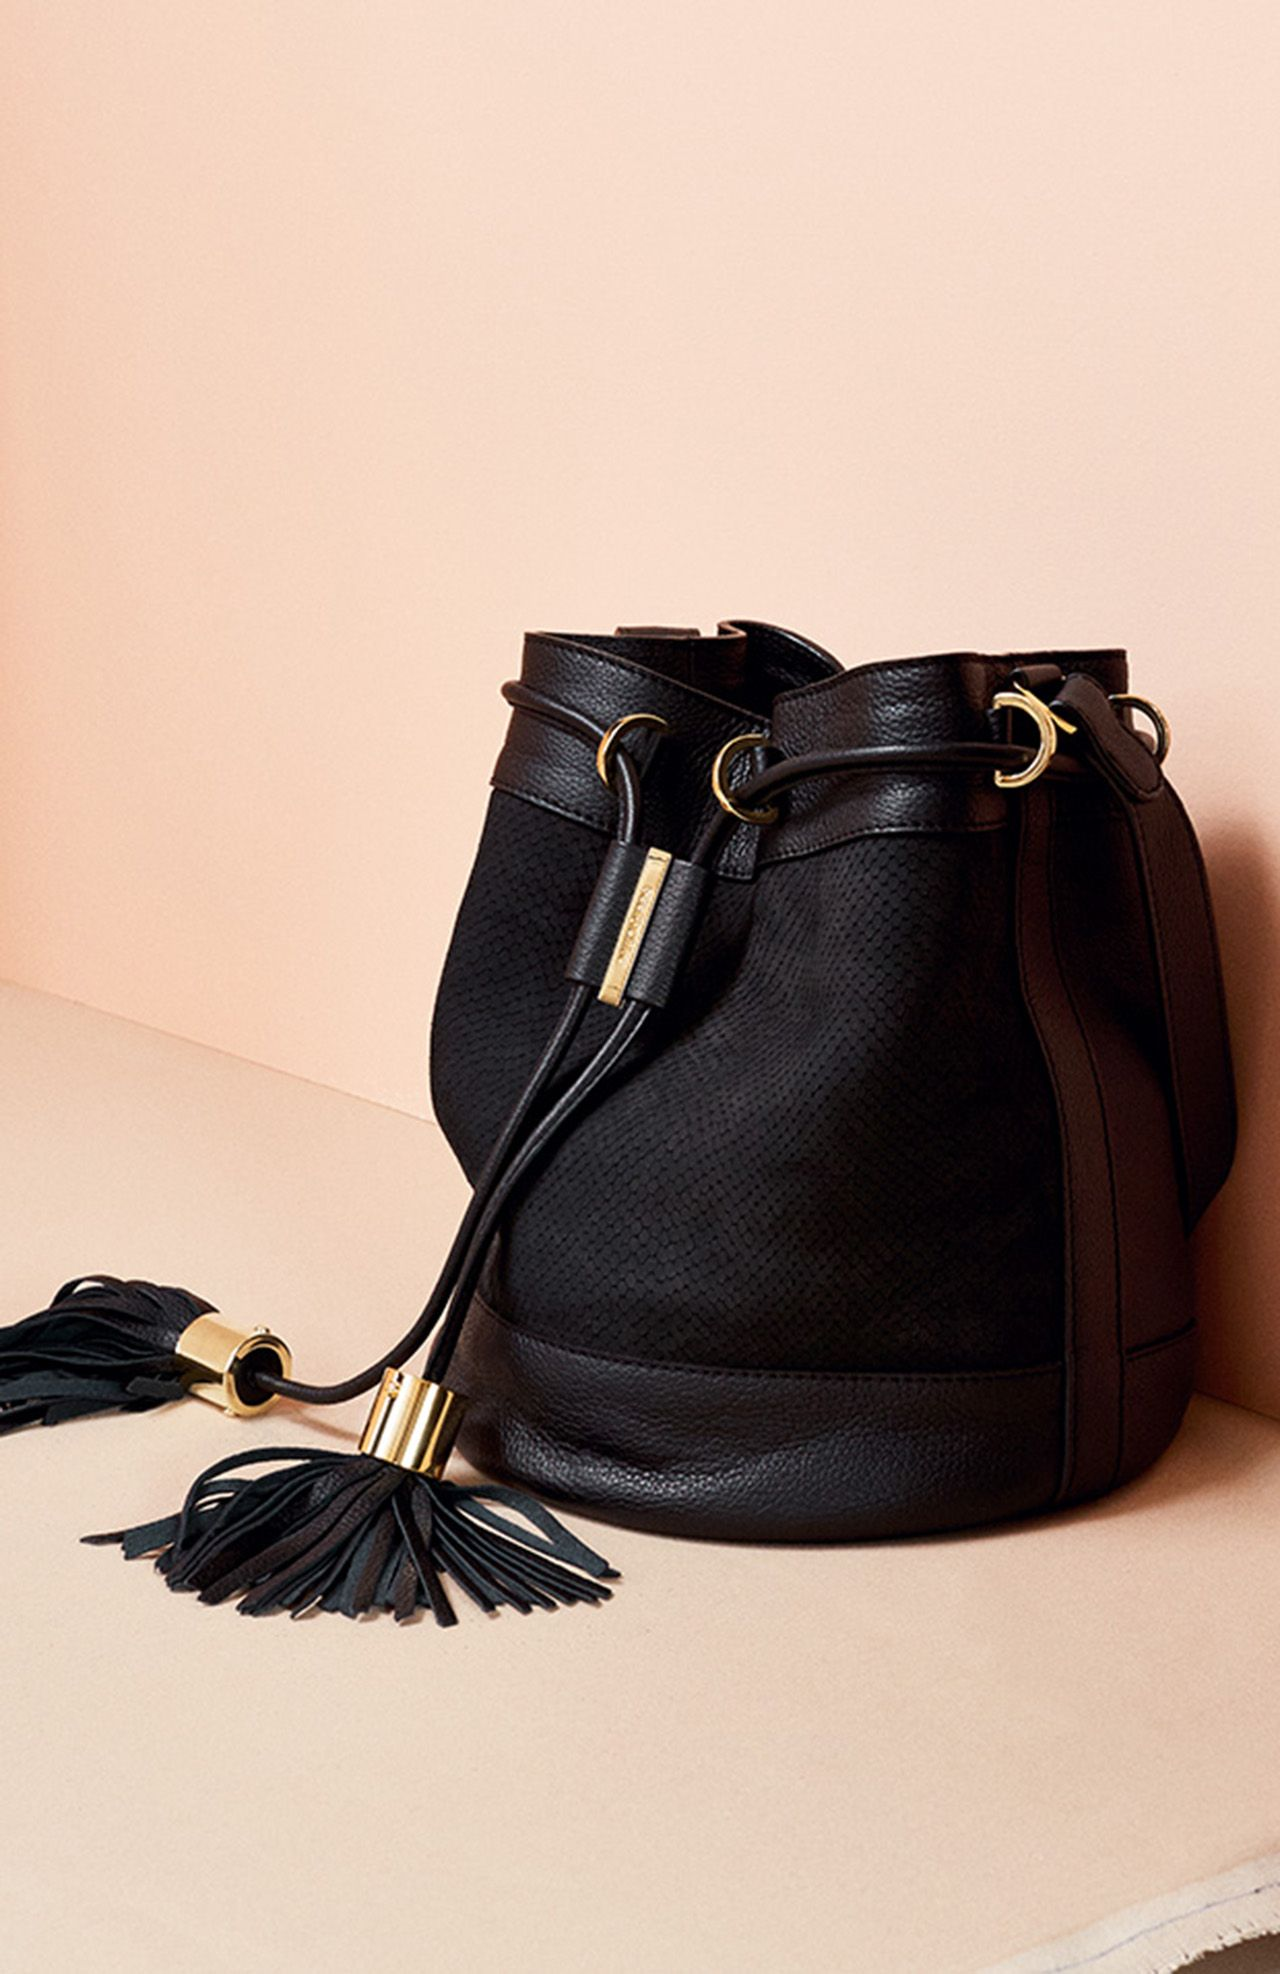 For Y Fashion 2015 Calzas Accessories Bolsos Seebychloe Fall BvqwTPxTf